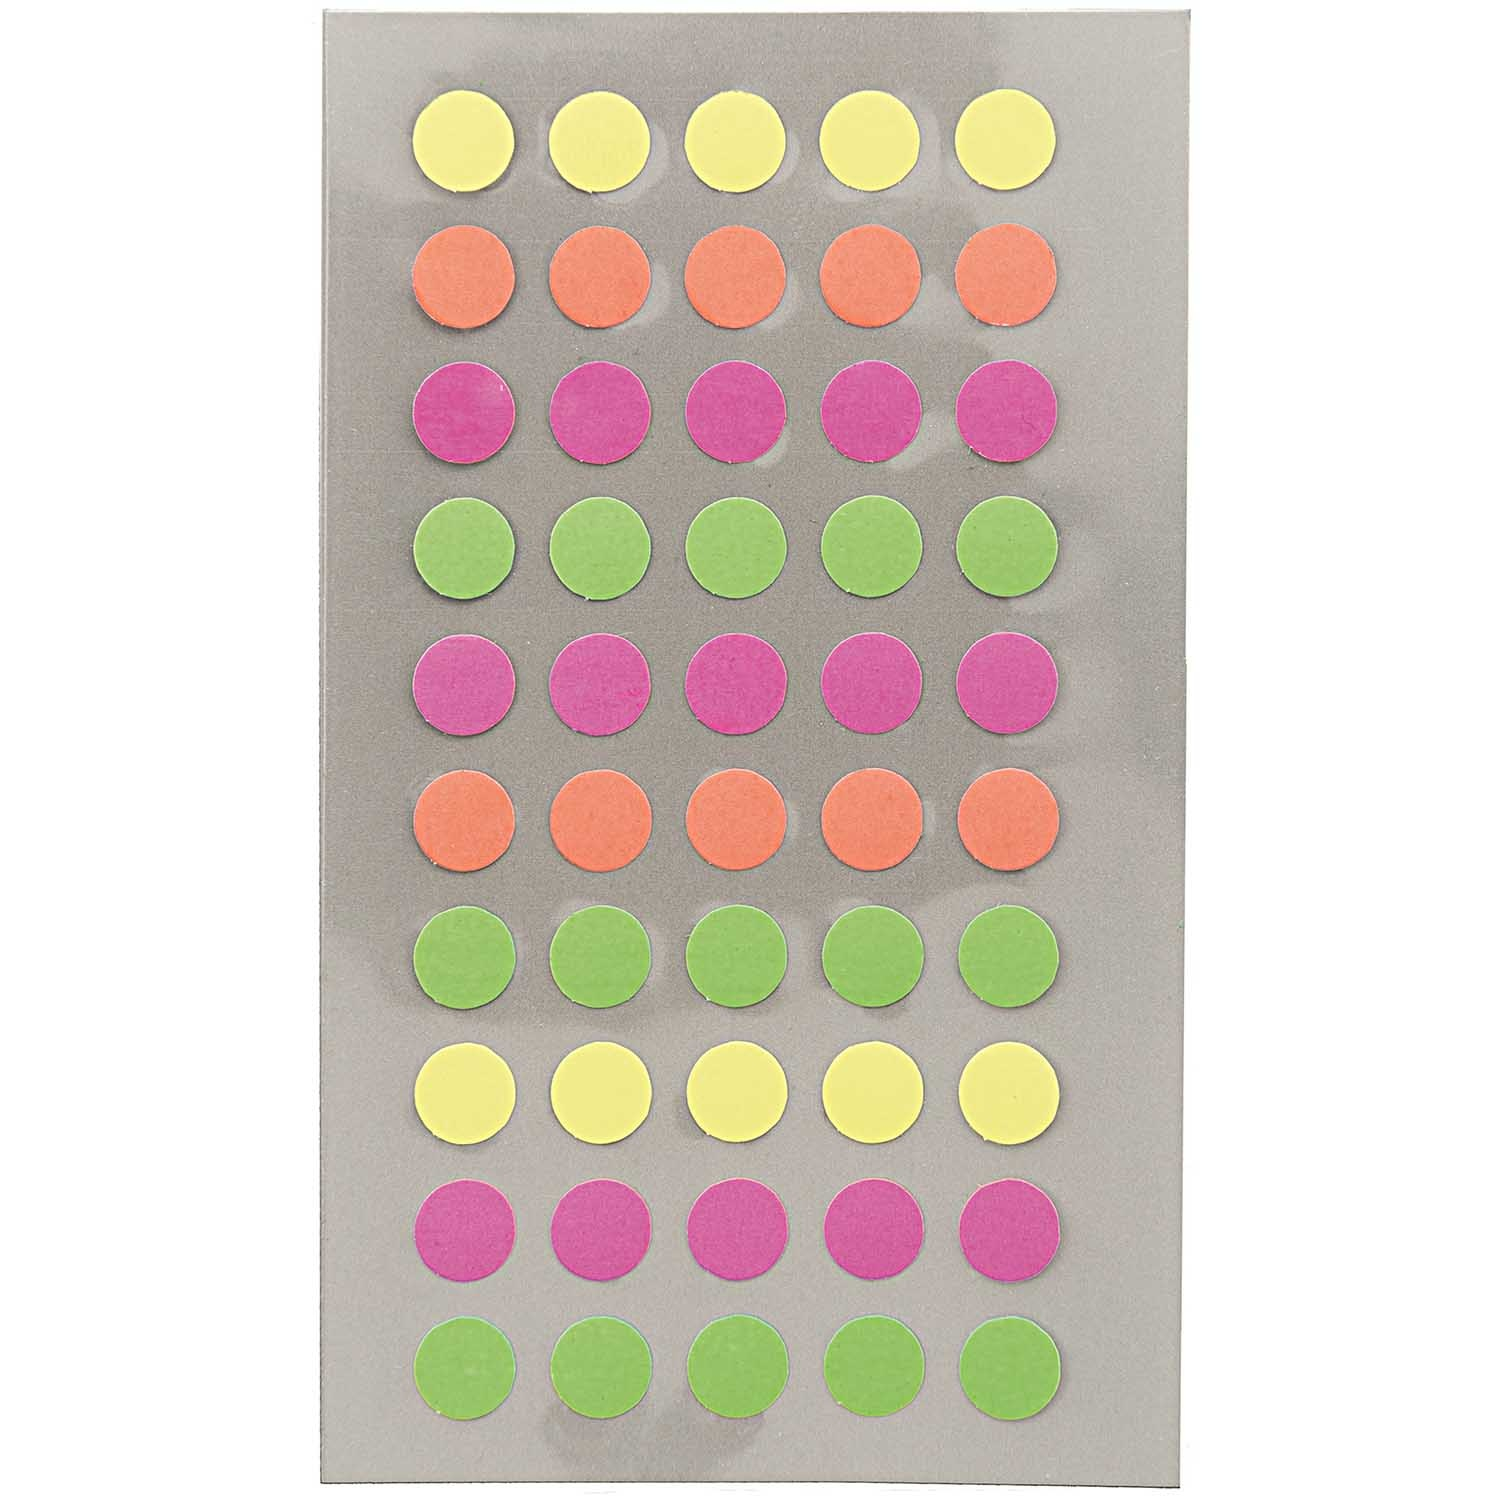 Rico NAY OFFICE STICKER, NEON DOTS 8MM 4 SHEETS, 7 X 15,5 CM